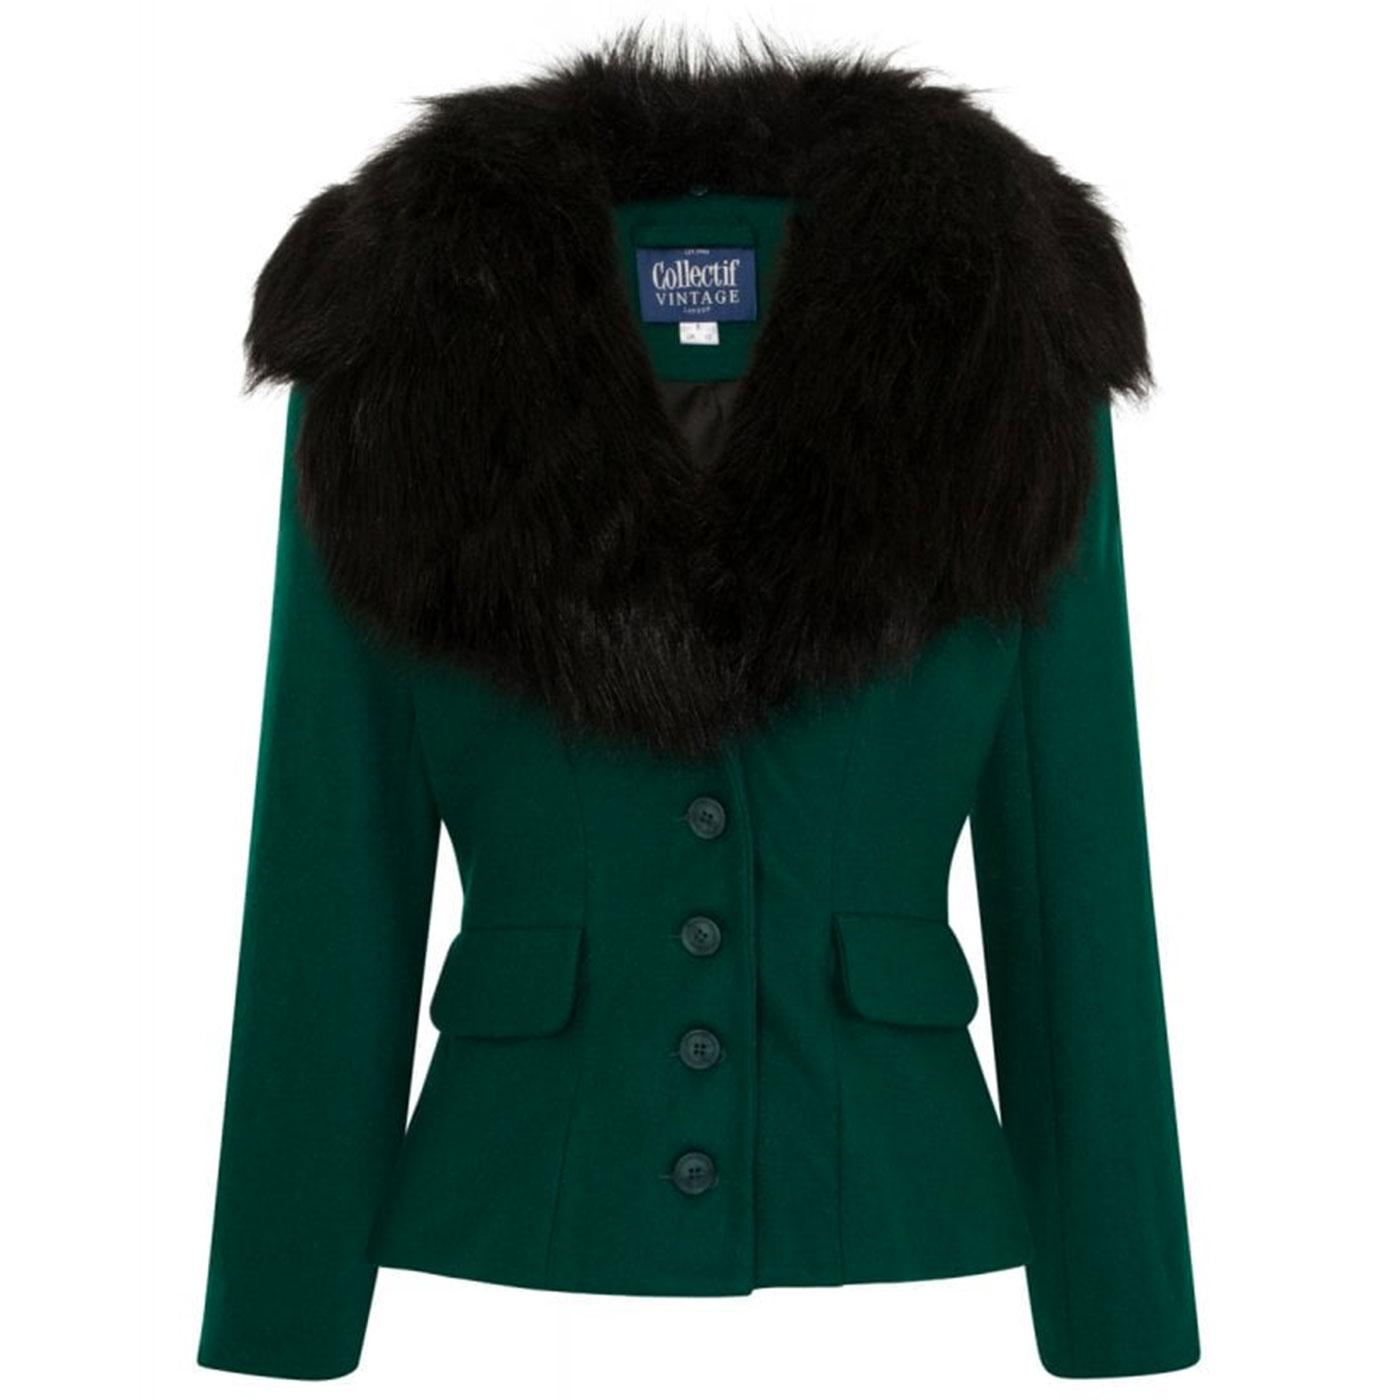 Cora COLLETIF Retro 50s Faux Fur Collar Jacket